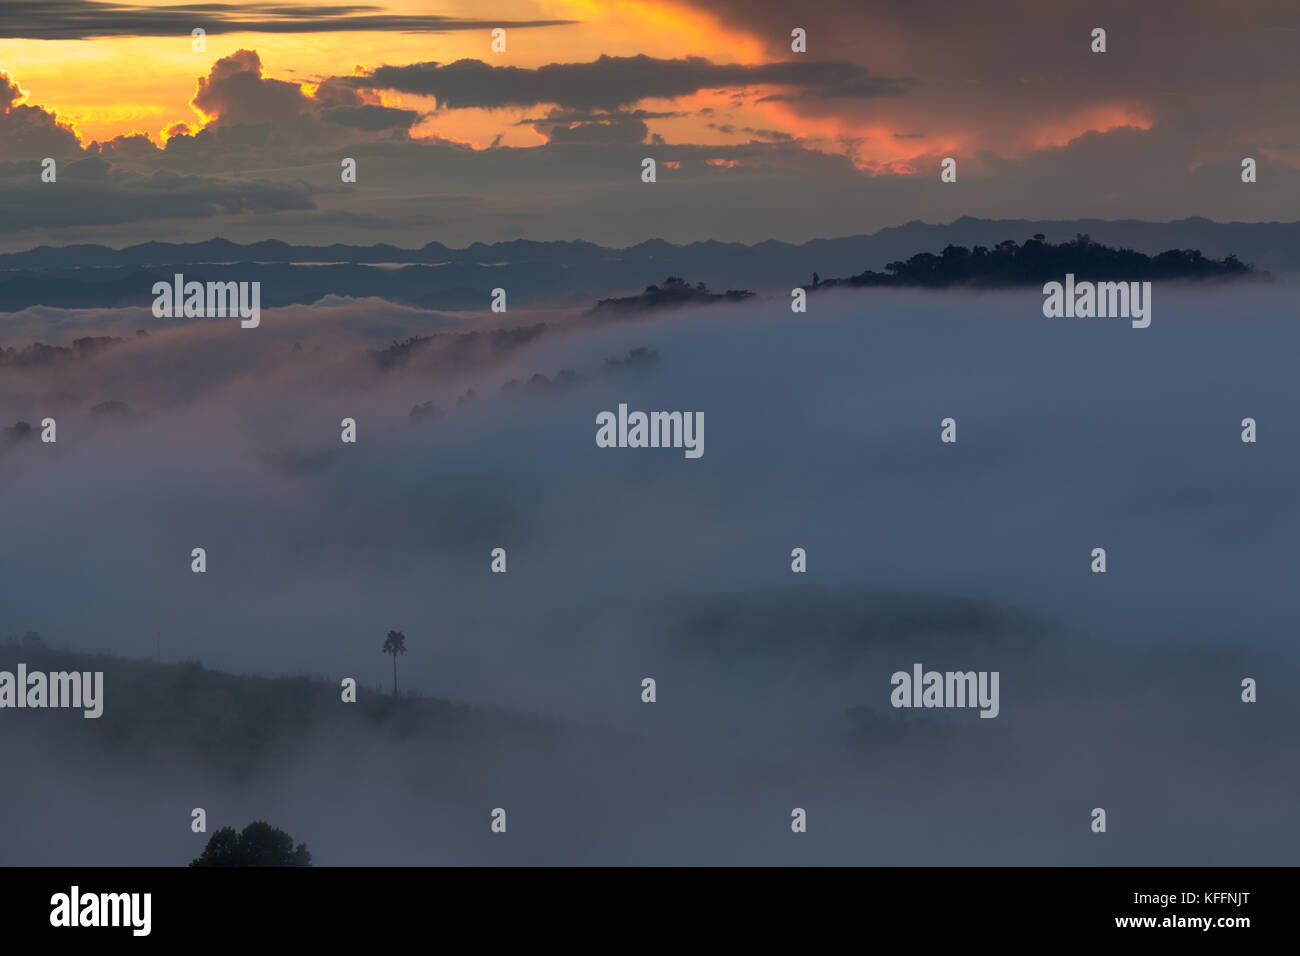 Sun rises and foggy./Mountain and Foggy in Phetchabun Province, Thailand. - Stock Image